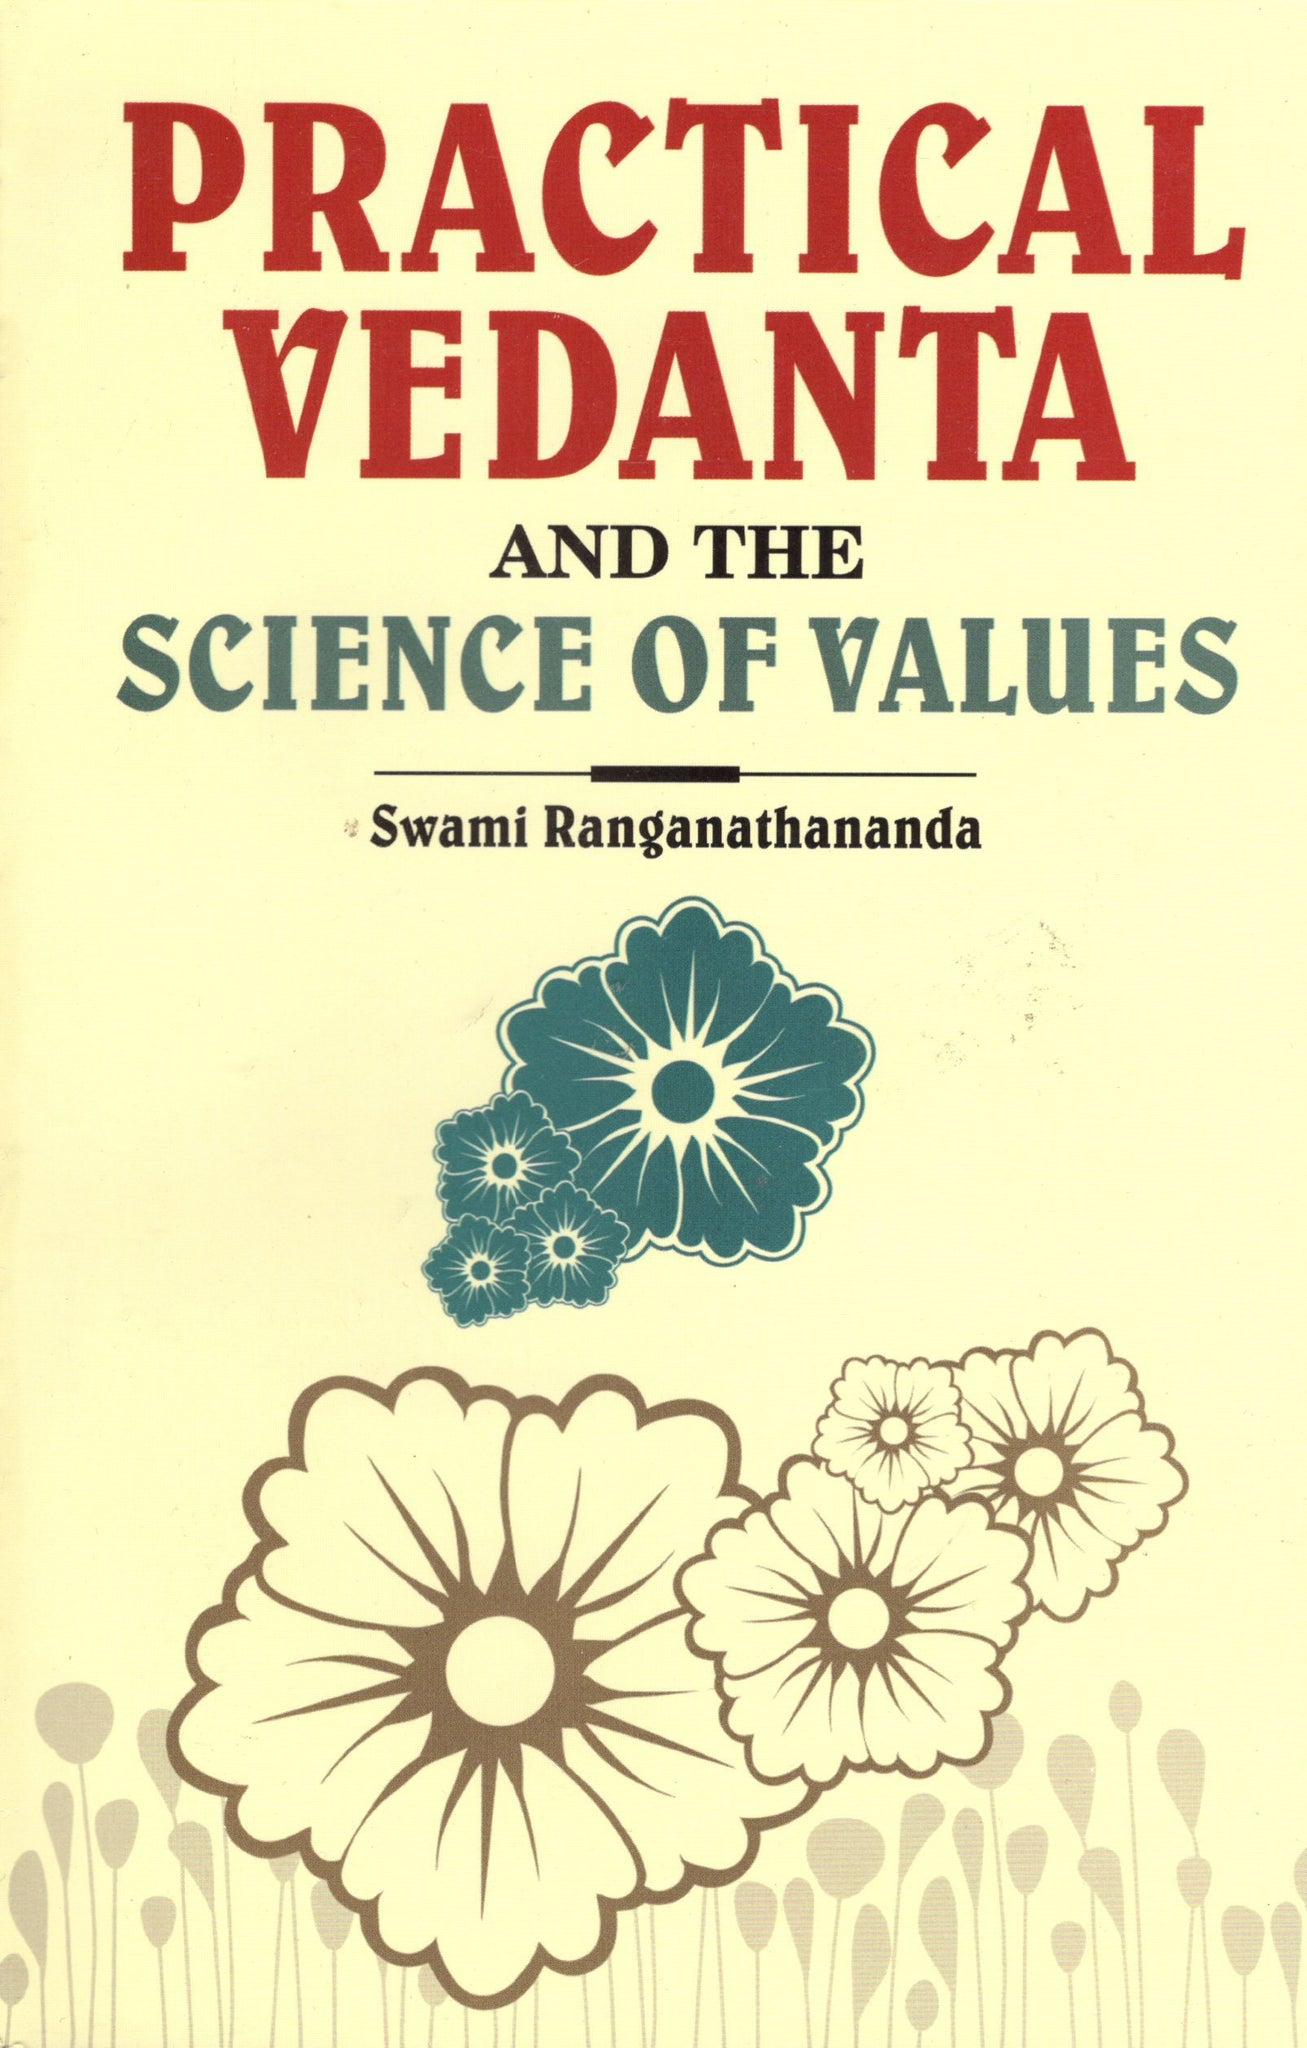 Practical Vedanta and the Science of Values